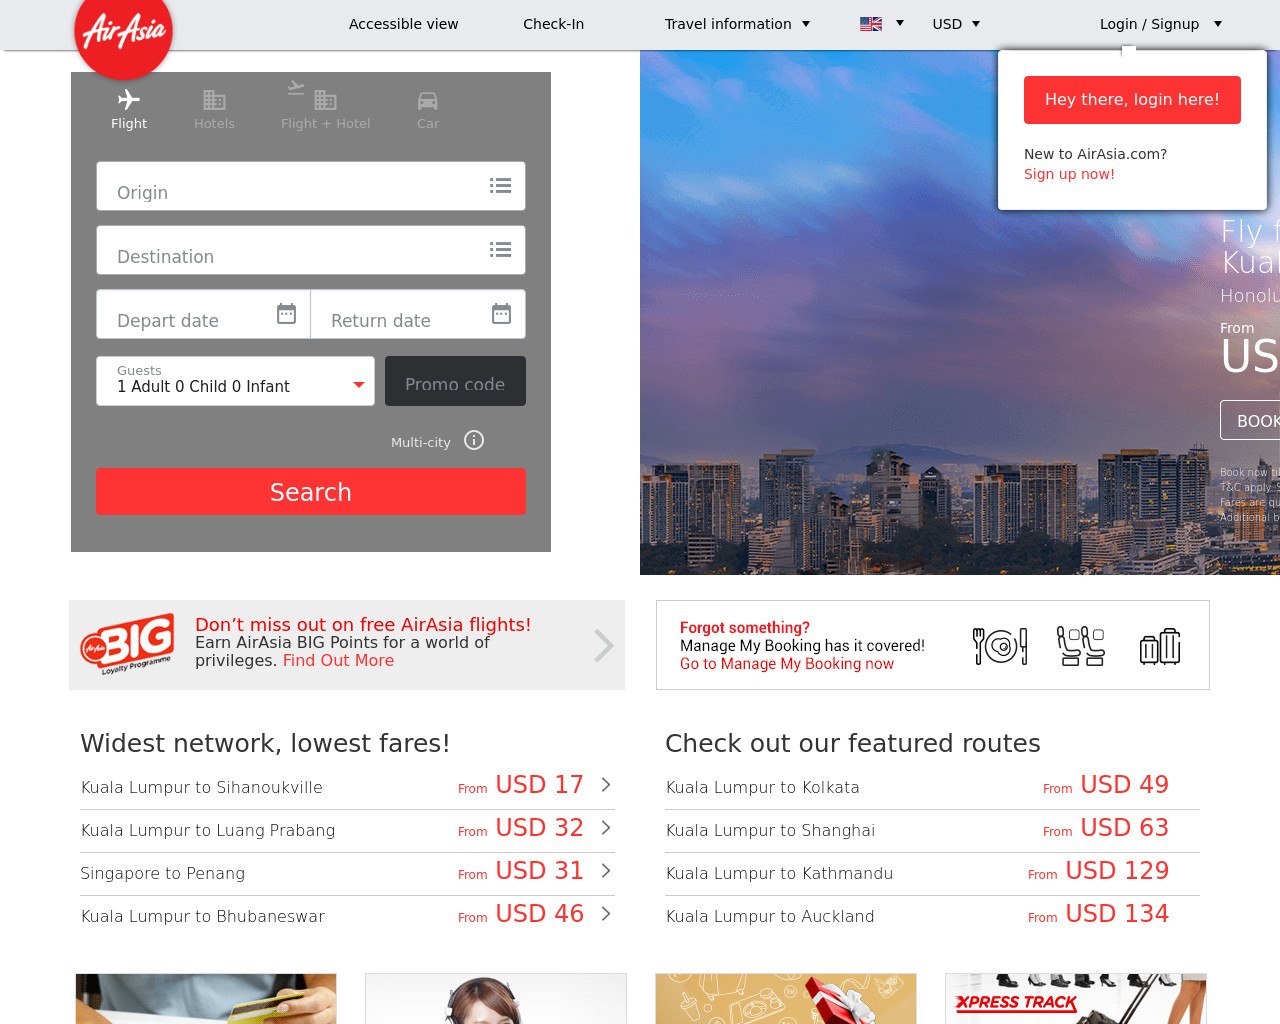 AirAsia-Advertising-Reviews-Pricing